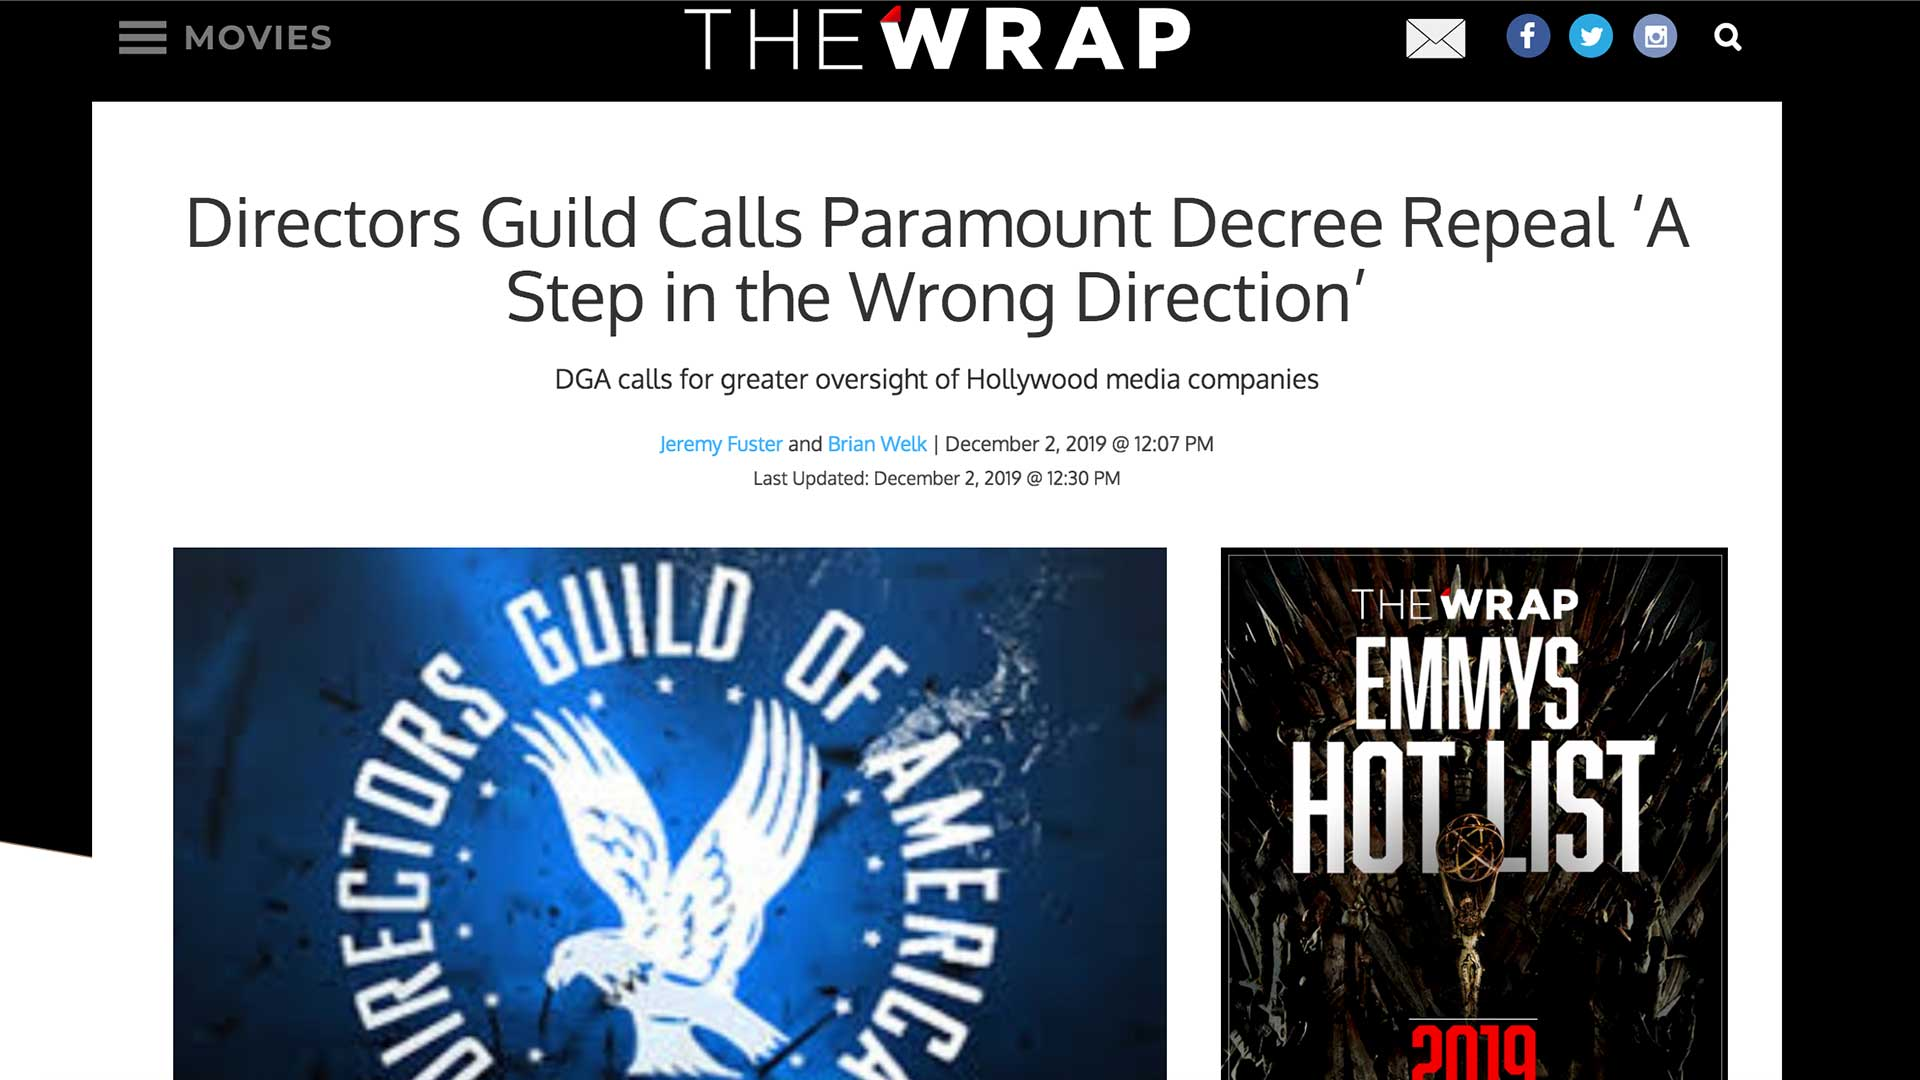 Fairness Rocks News Directors Guild Calls Paramount Decree Repeal 'A Step in the Wrong Direction'